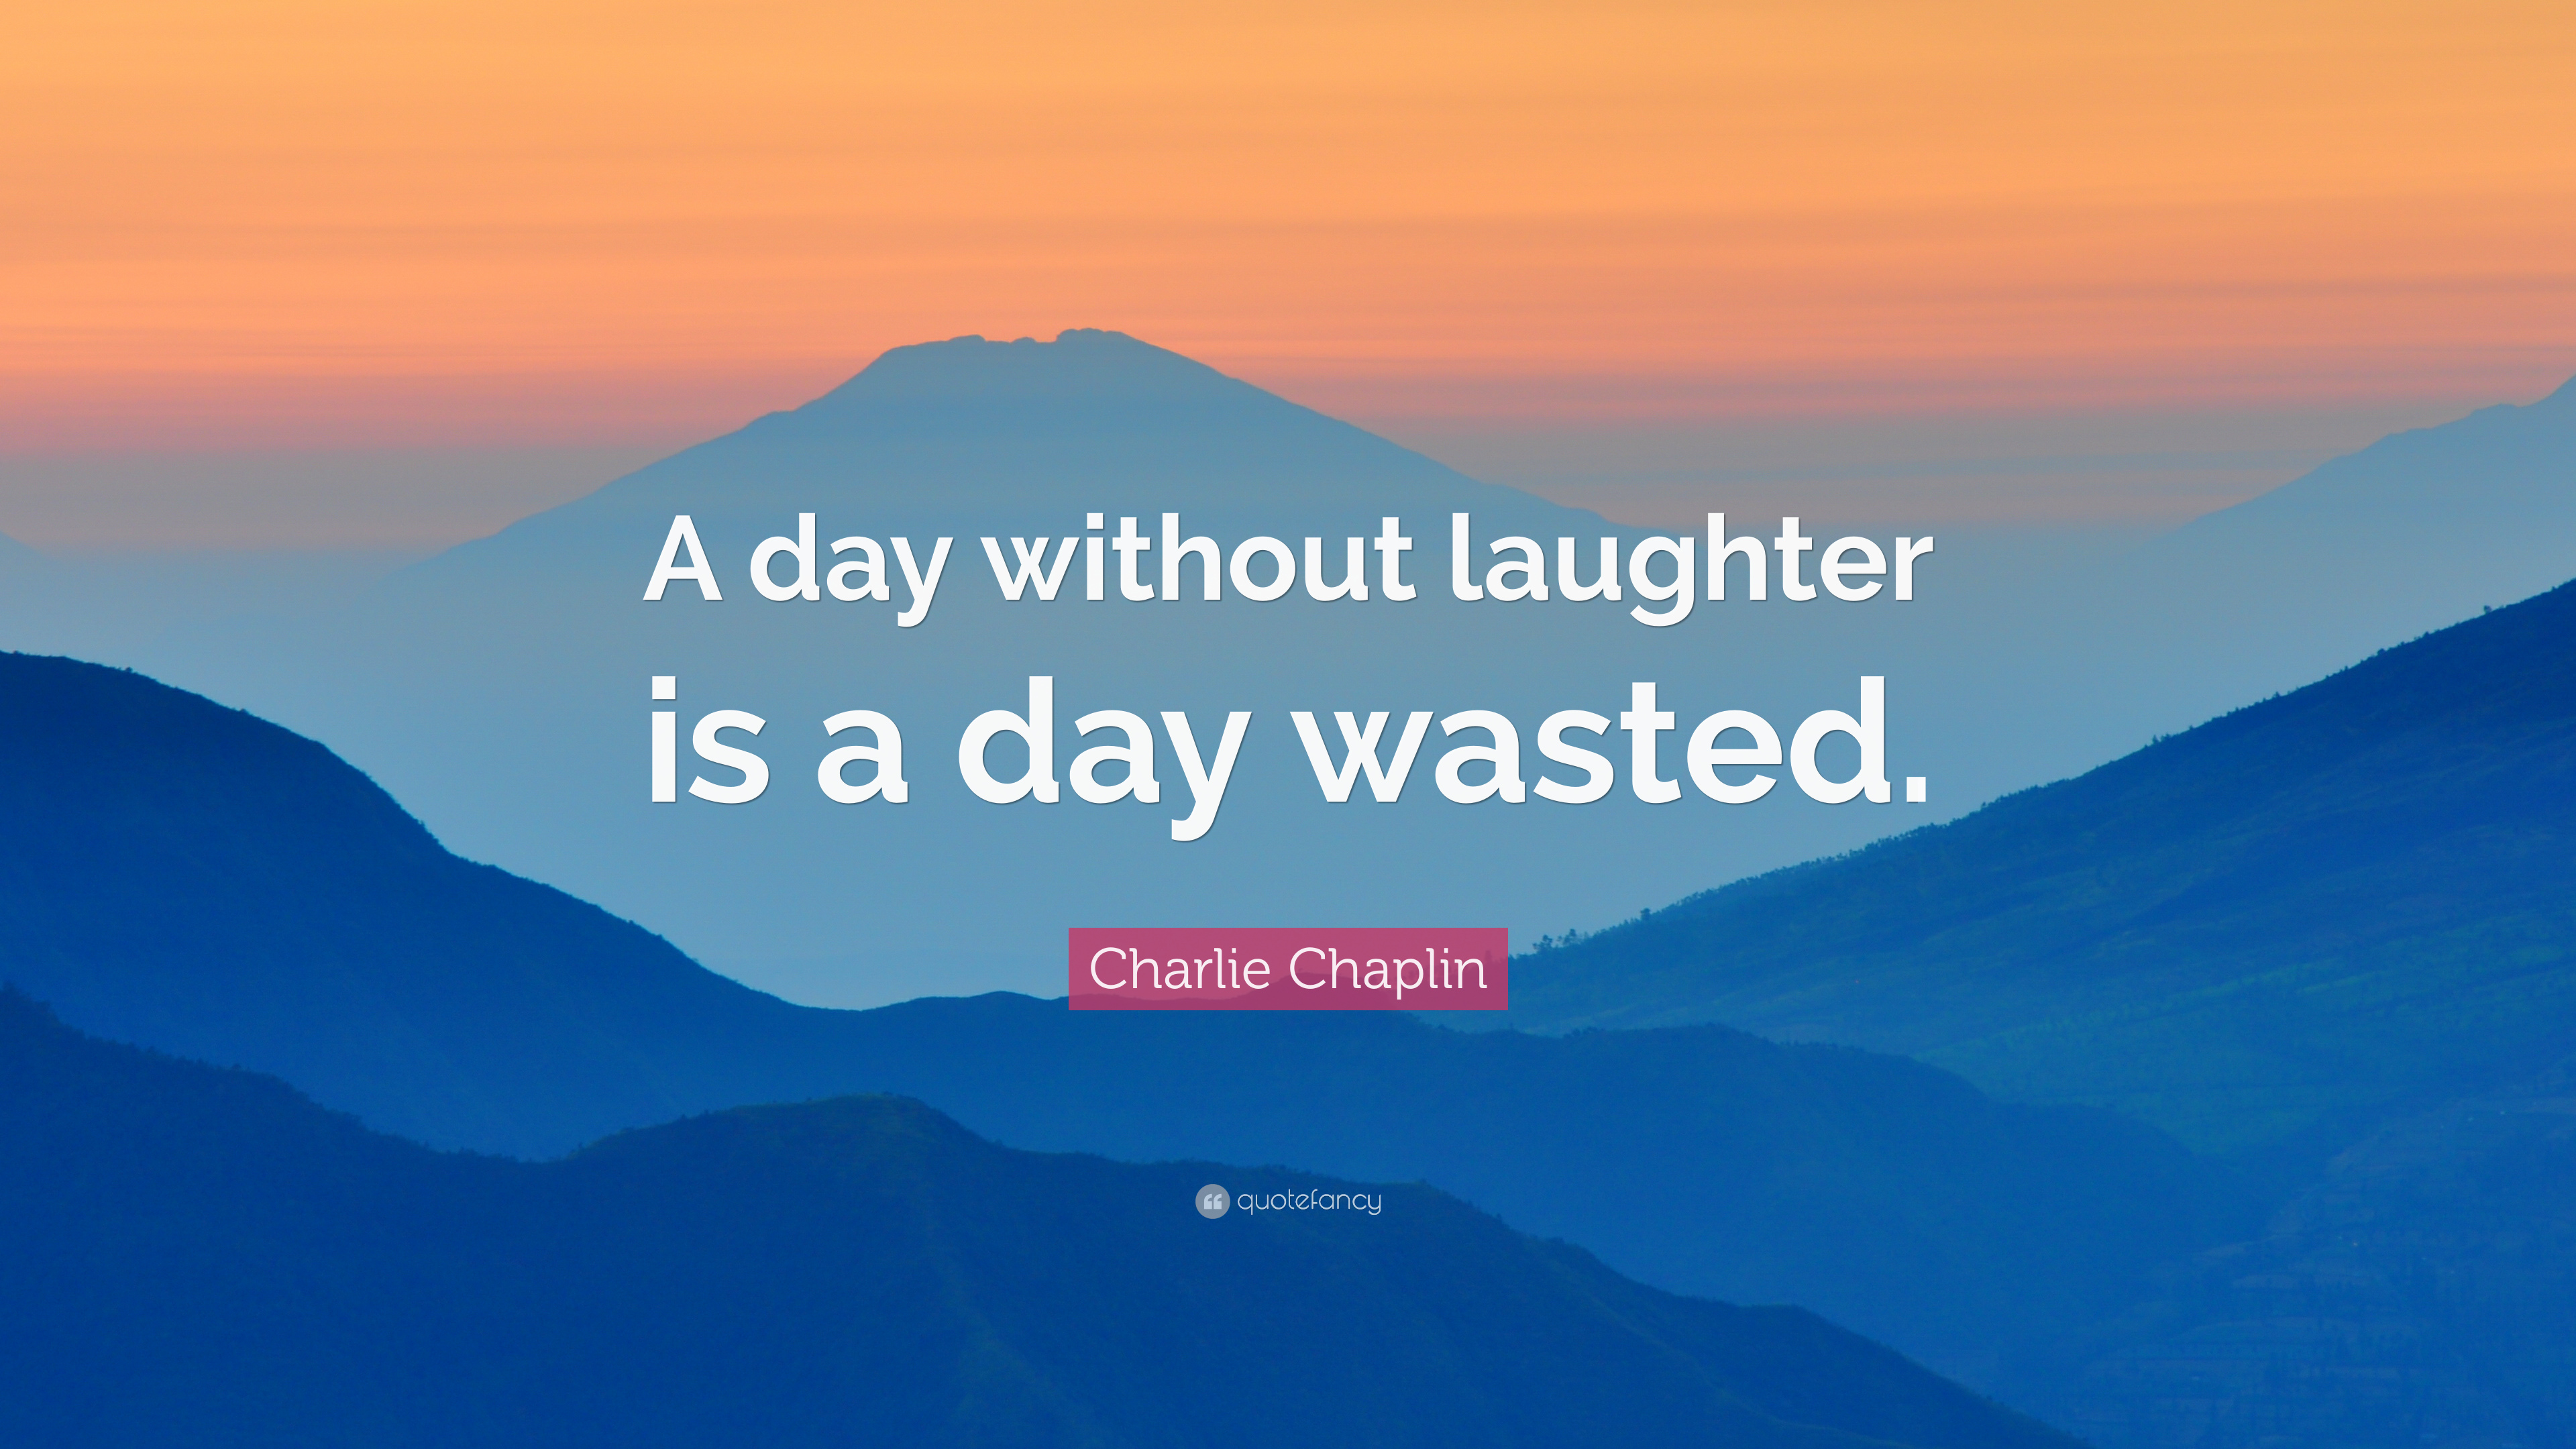 Essay on a day without laughter is a day wasted